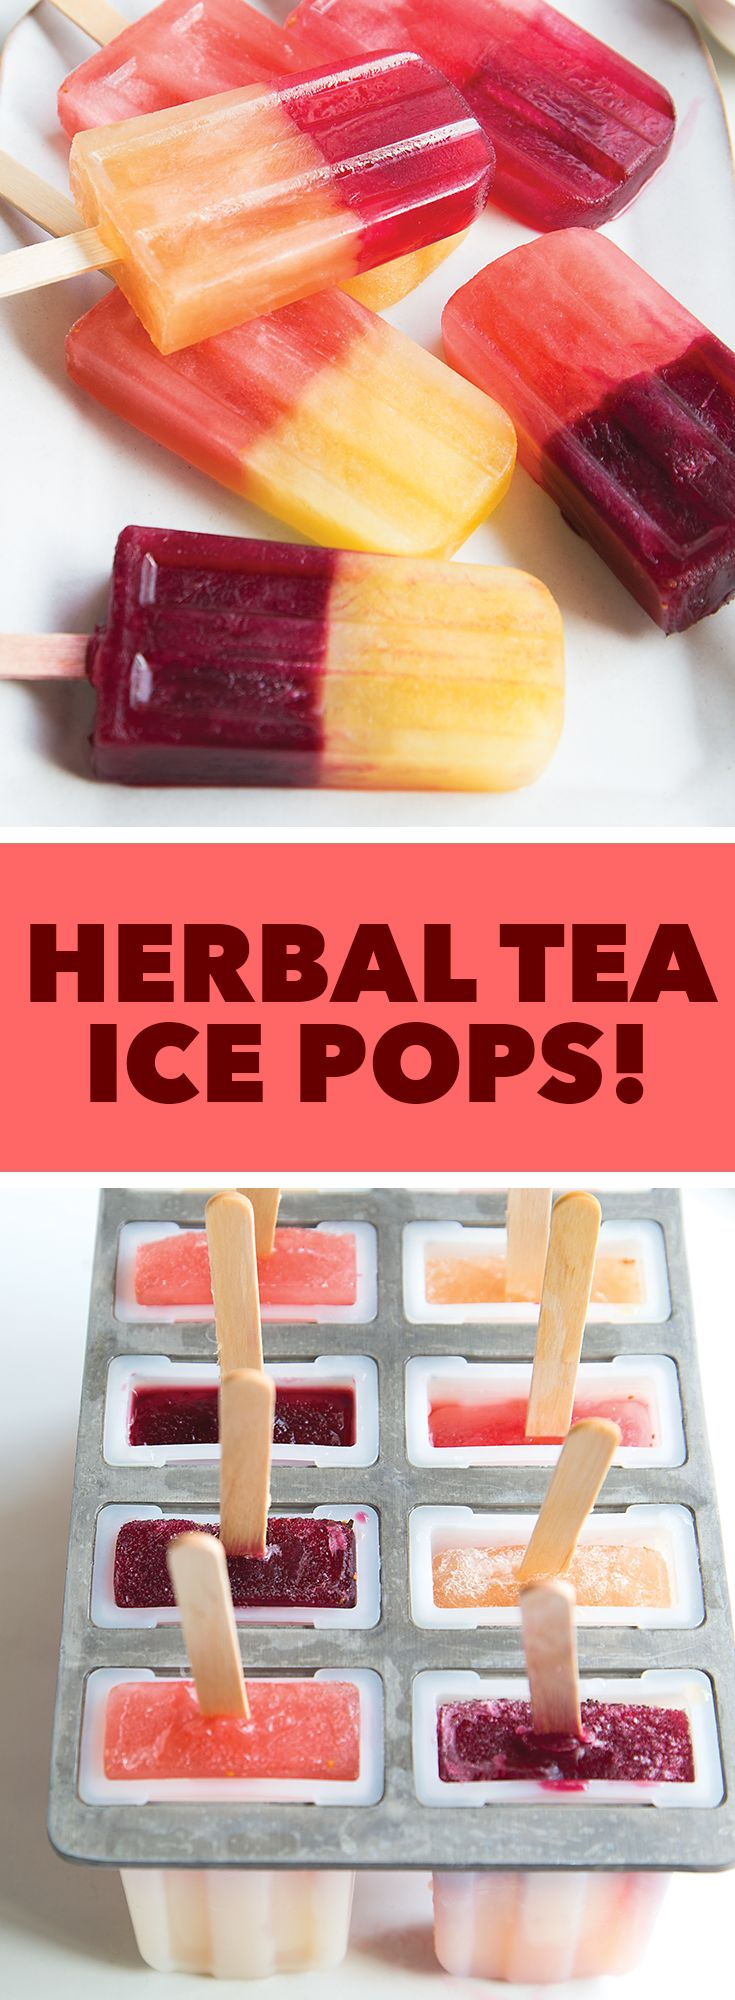 Ice pops made from herbals teas are a light and sophisticated way to beat the summer heat!